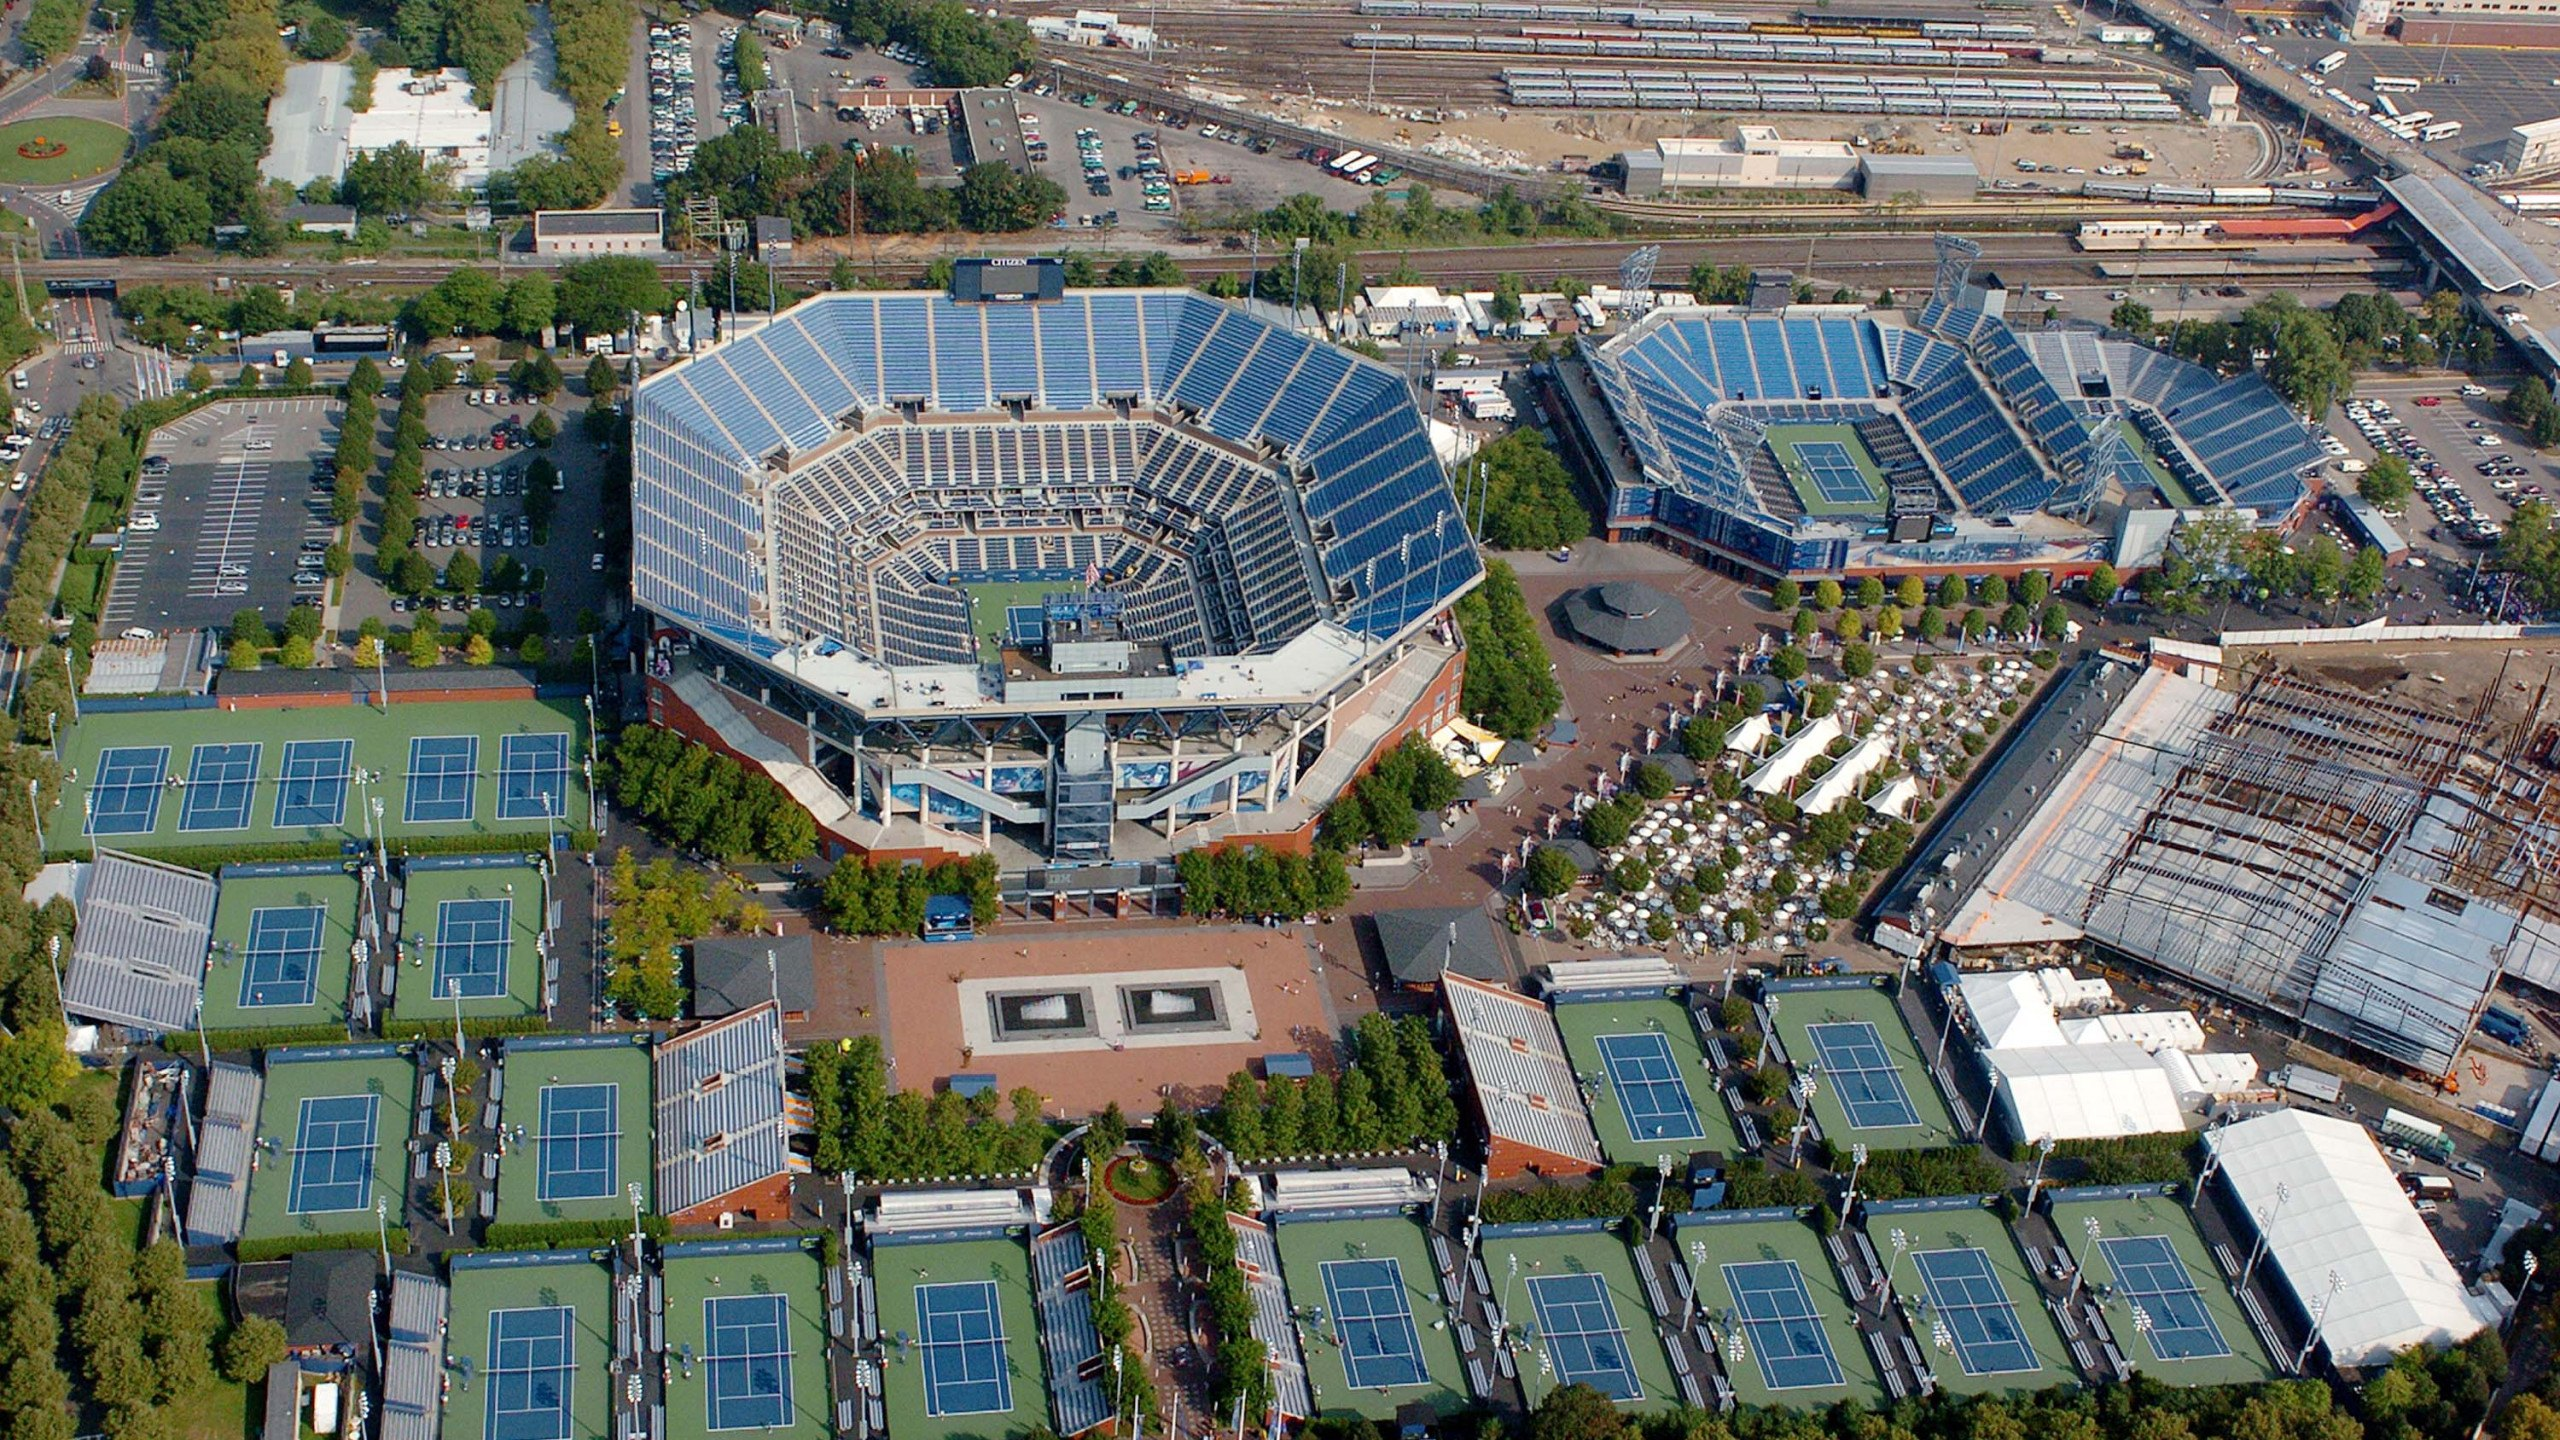 USTA US Open players